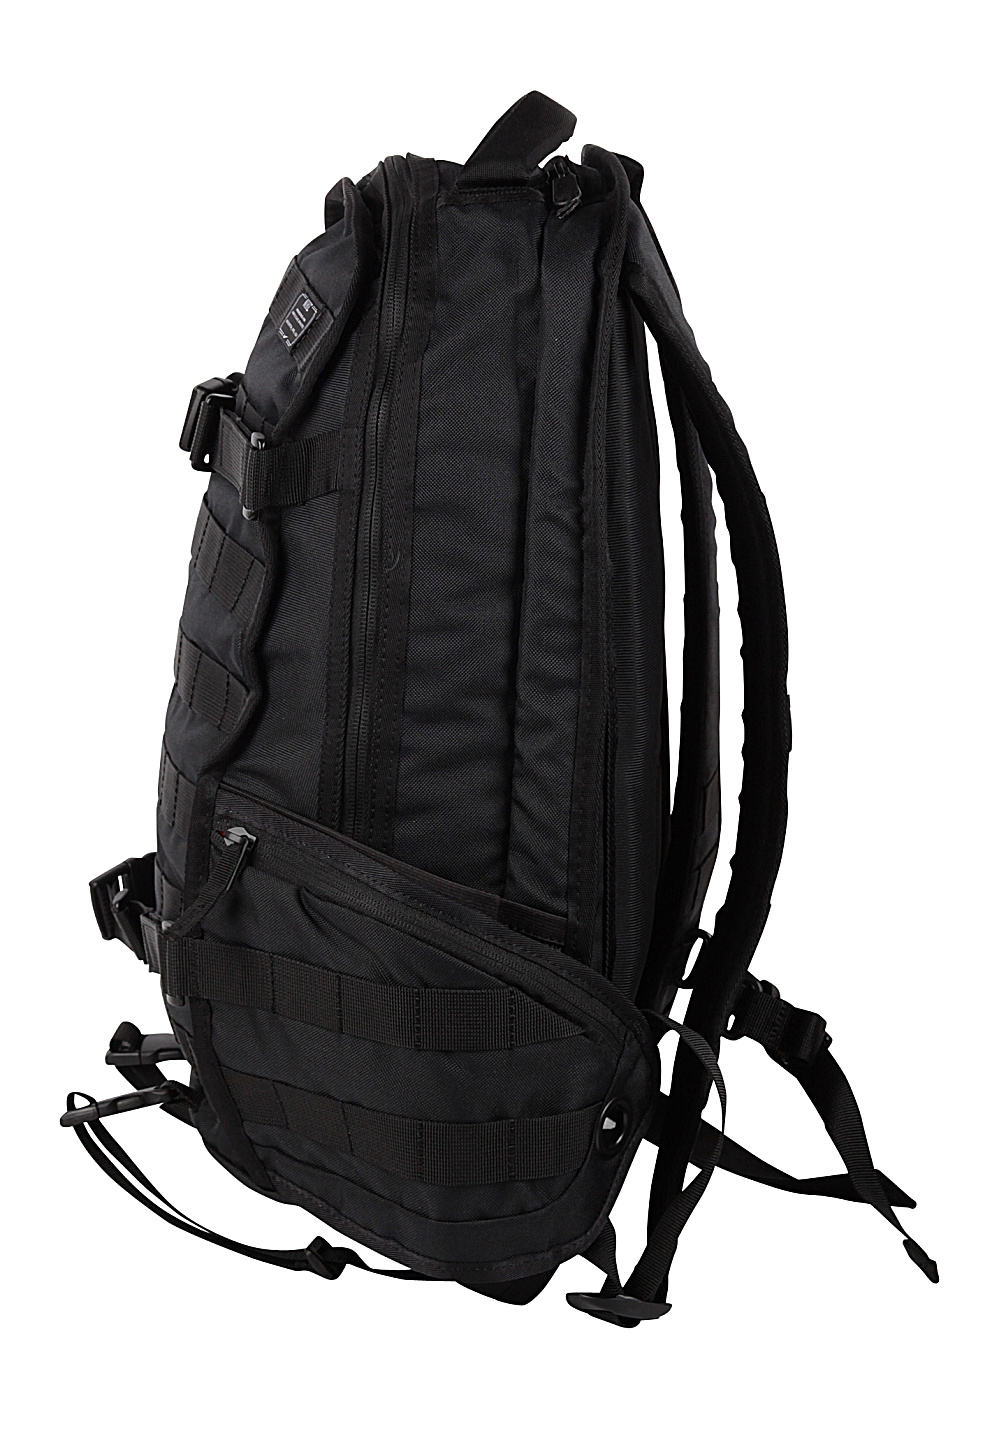 33b488f9eeb Home · NIKE SB RPM Backpack - Computer Backpack for Men - Black. Back to  Overview. 1  2  3. Previous. Next